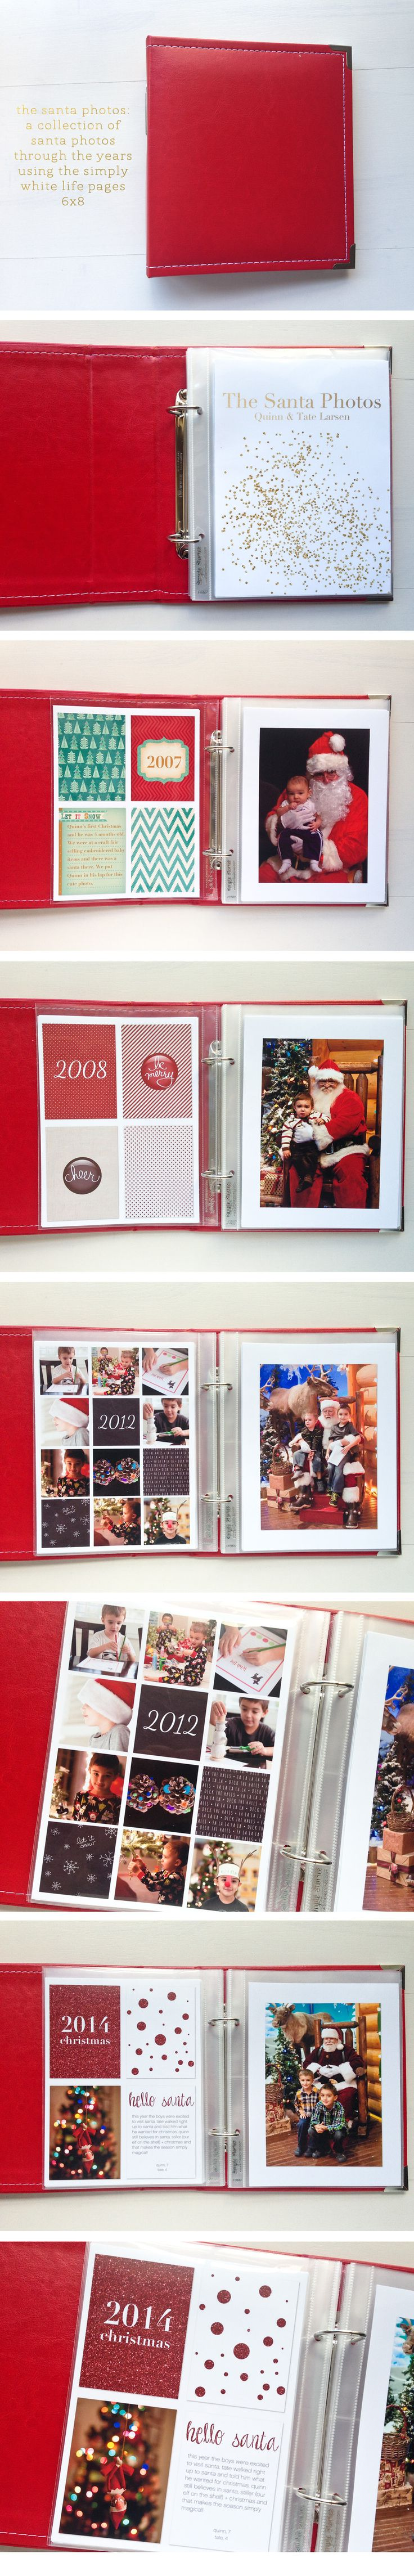 The Santa Photos album made with the Simply White Life Pages 6x8 digital page templates | page layout ideas + inspiration for digital project life, modern memory keeping, pocket scrapbooking, December Daily ideas ==> hellotracylarsen.com